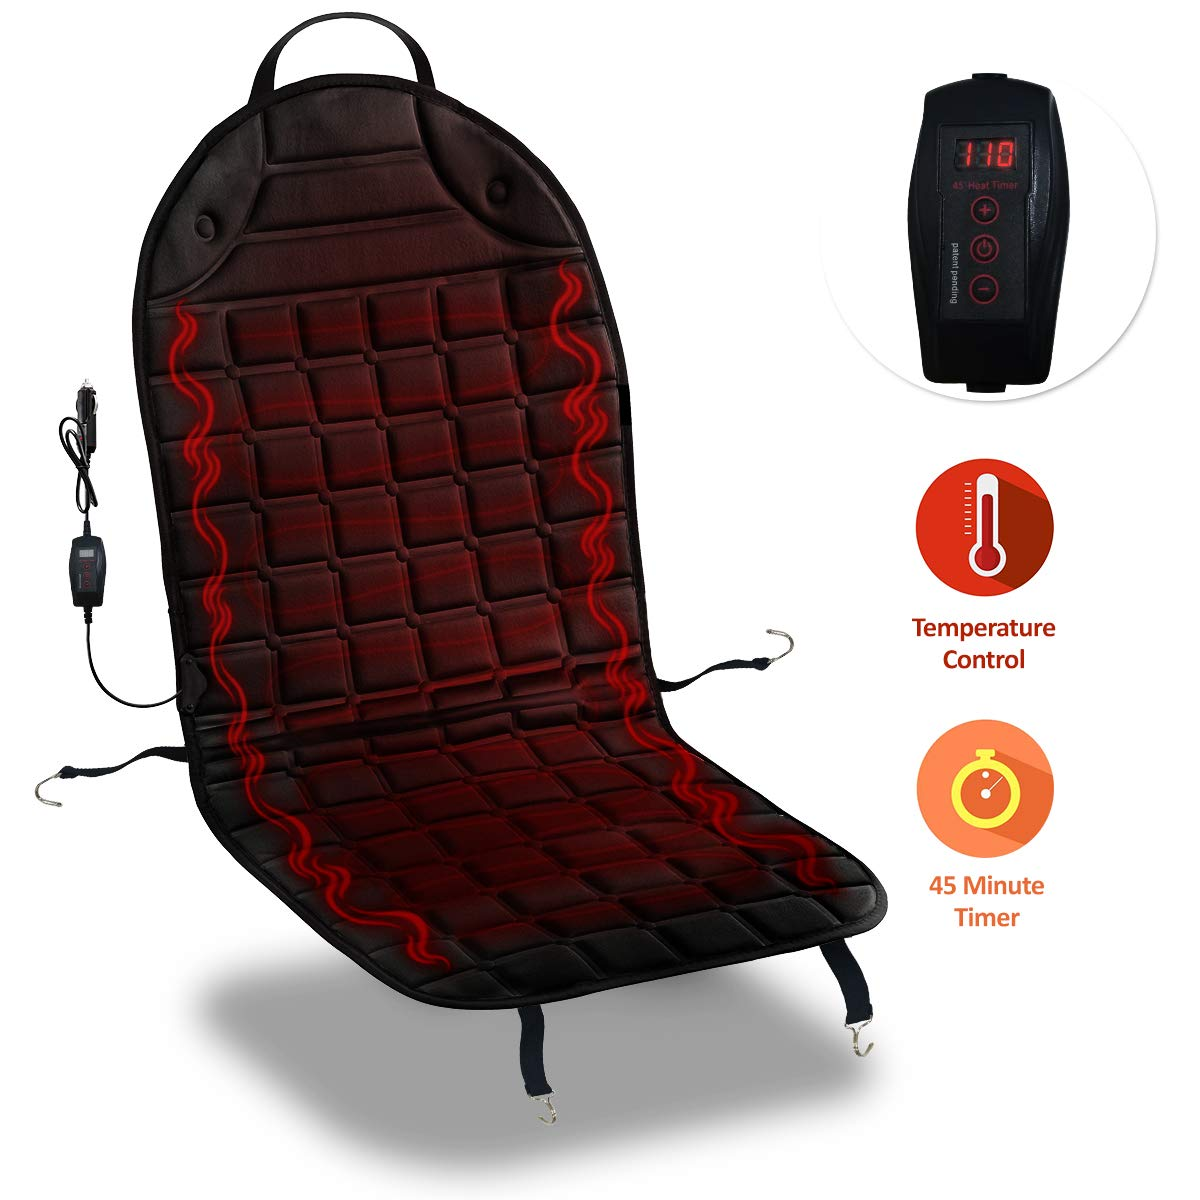 Zone Tech Car Heated Seat Cover Cushion Hot Warmer - Fireproof New and Improved 2019 Version 12V Heating Warmer Pad Cover Perfect for Cold Weather and Winter Driving